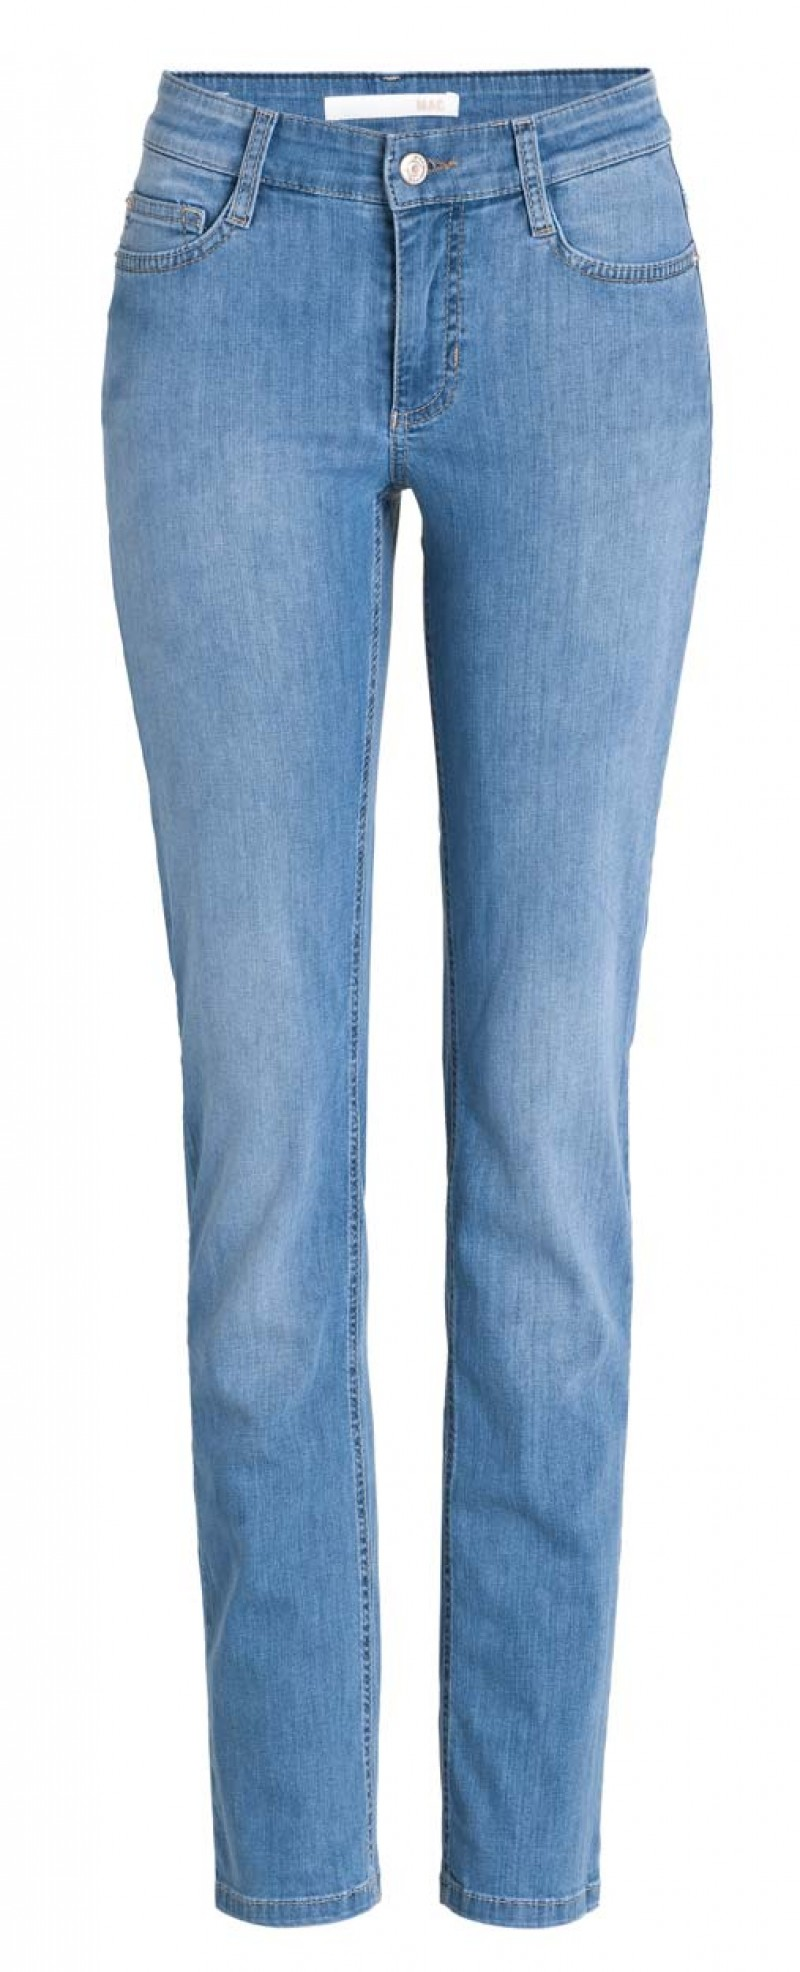 Mac Angela Jeans - Slim Fit - Light Summer Wash